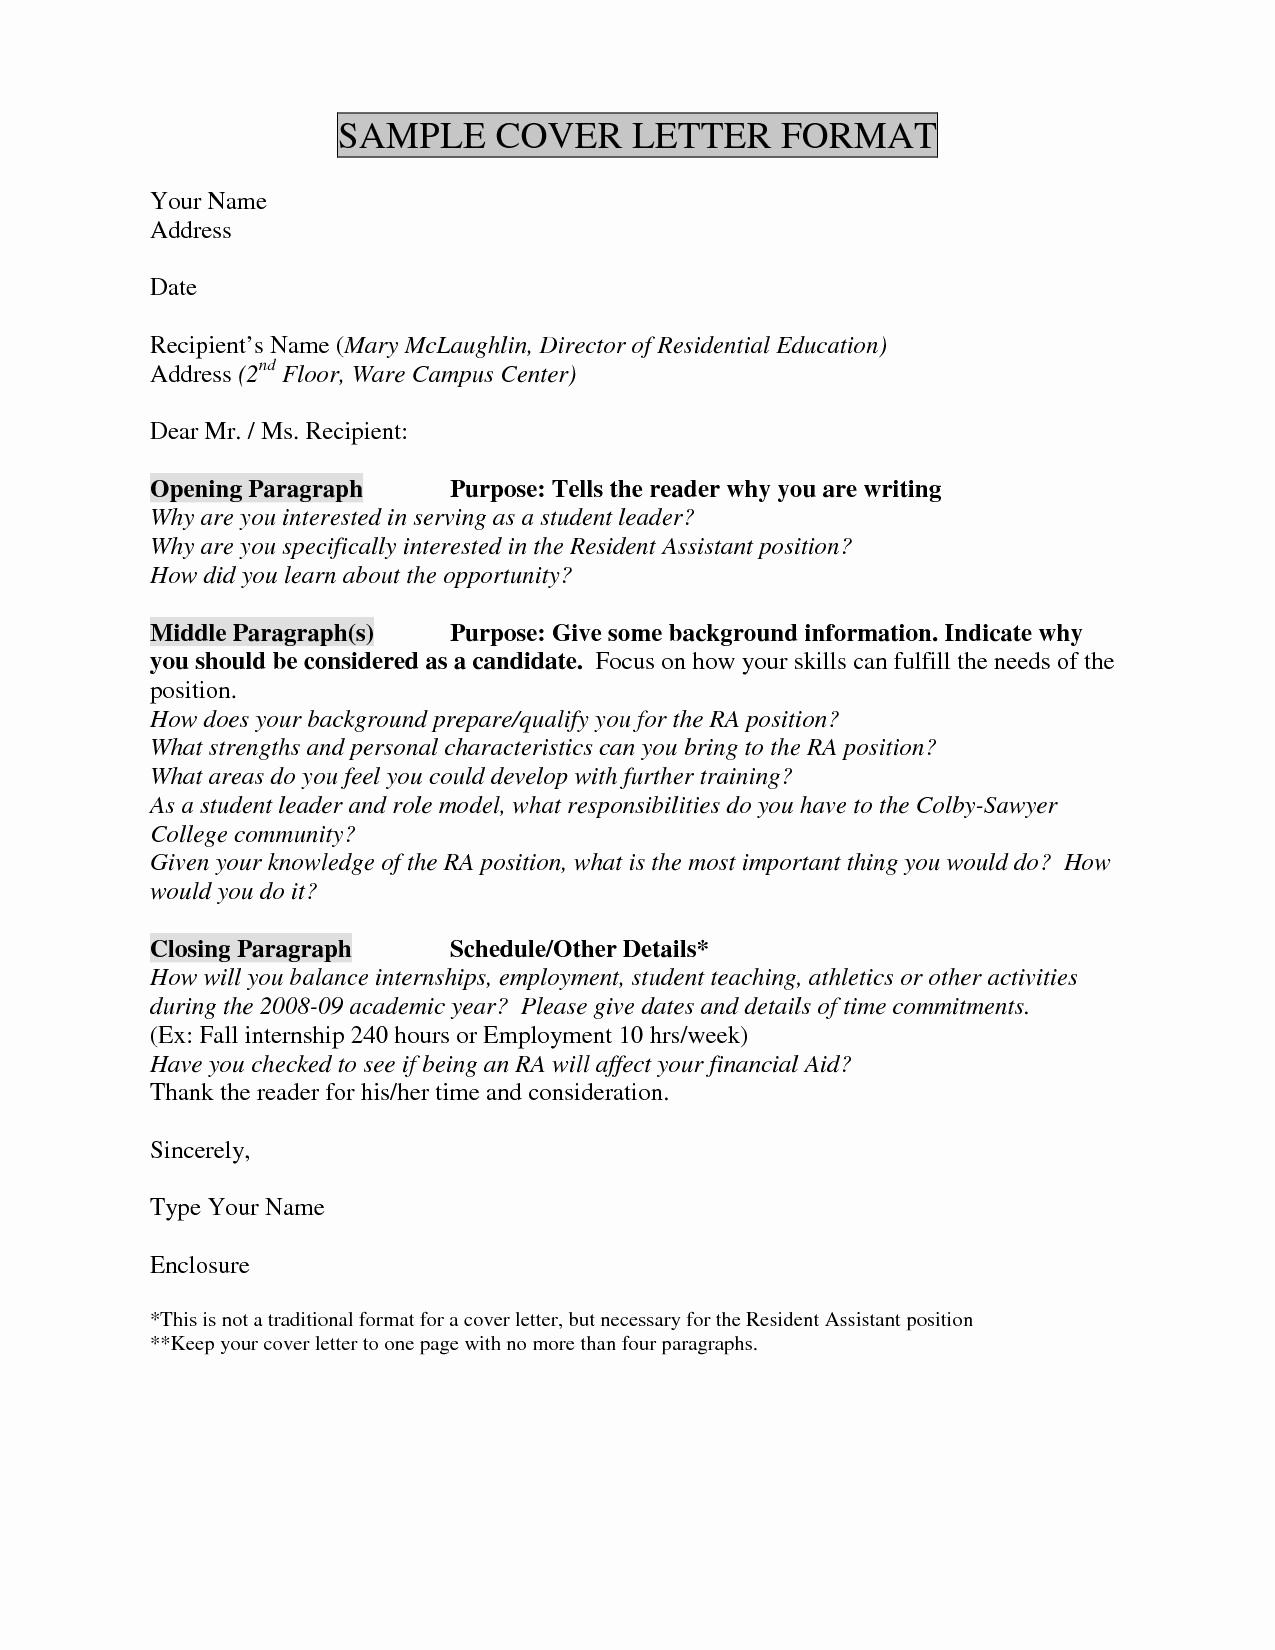 Electronic Cover Letter Template - Internship Cover Letter Template Best Unique if I Apply to More